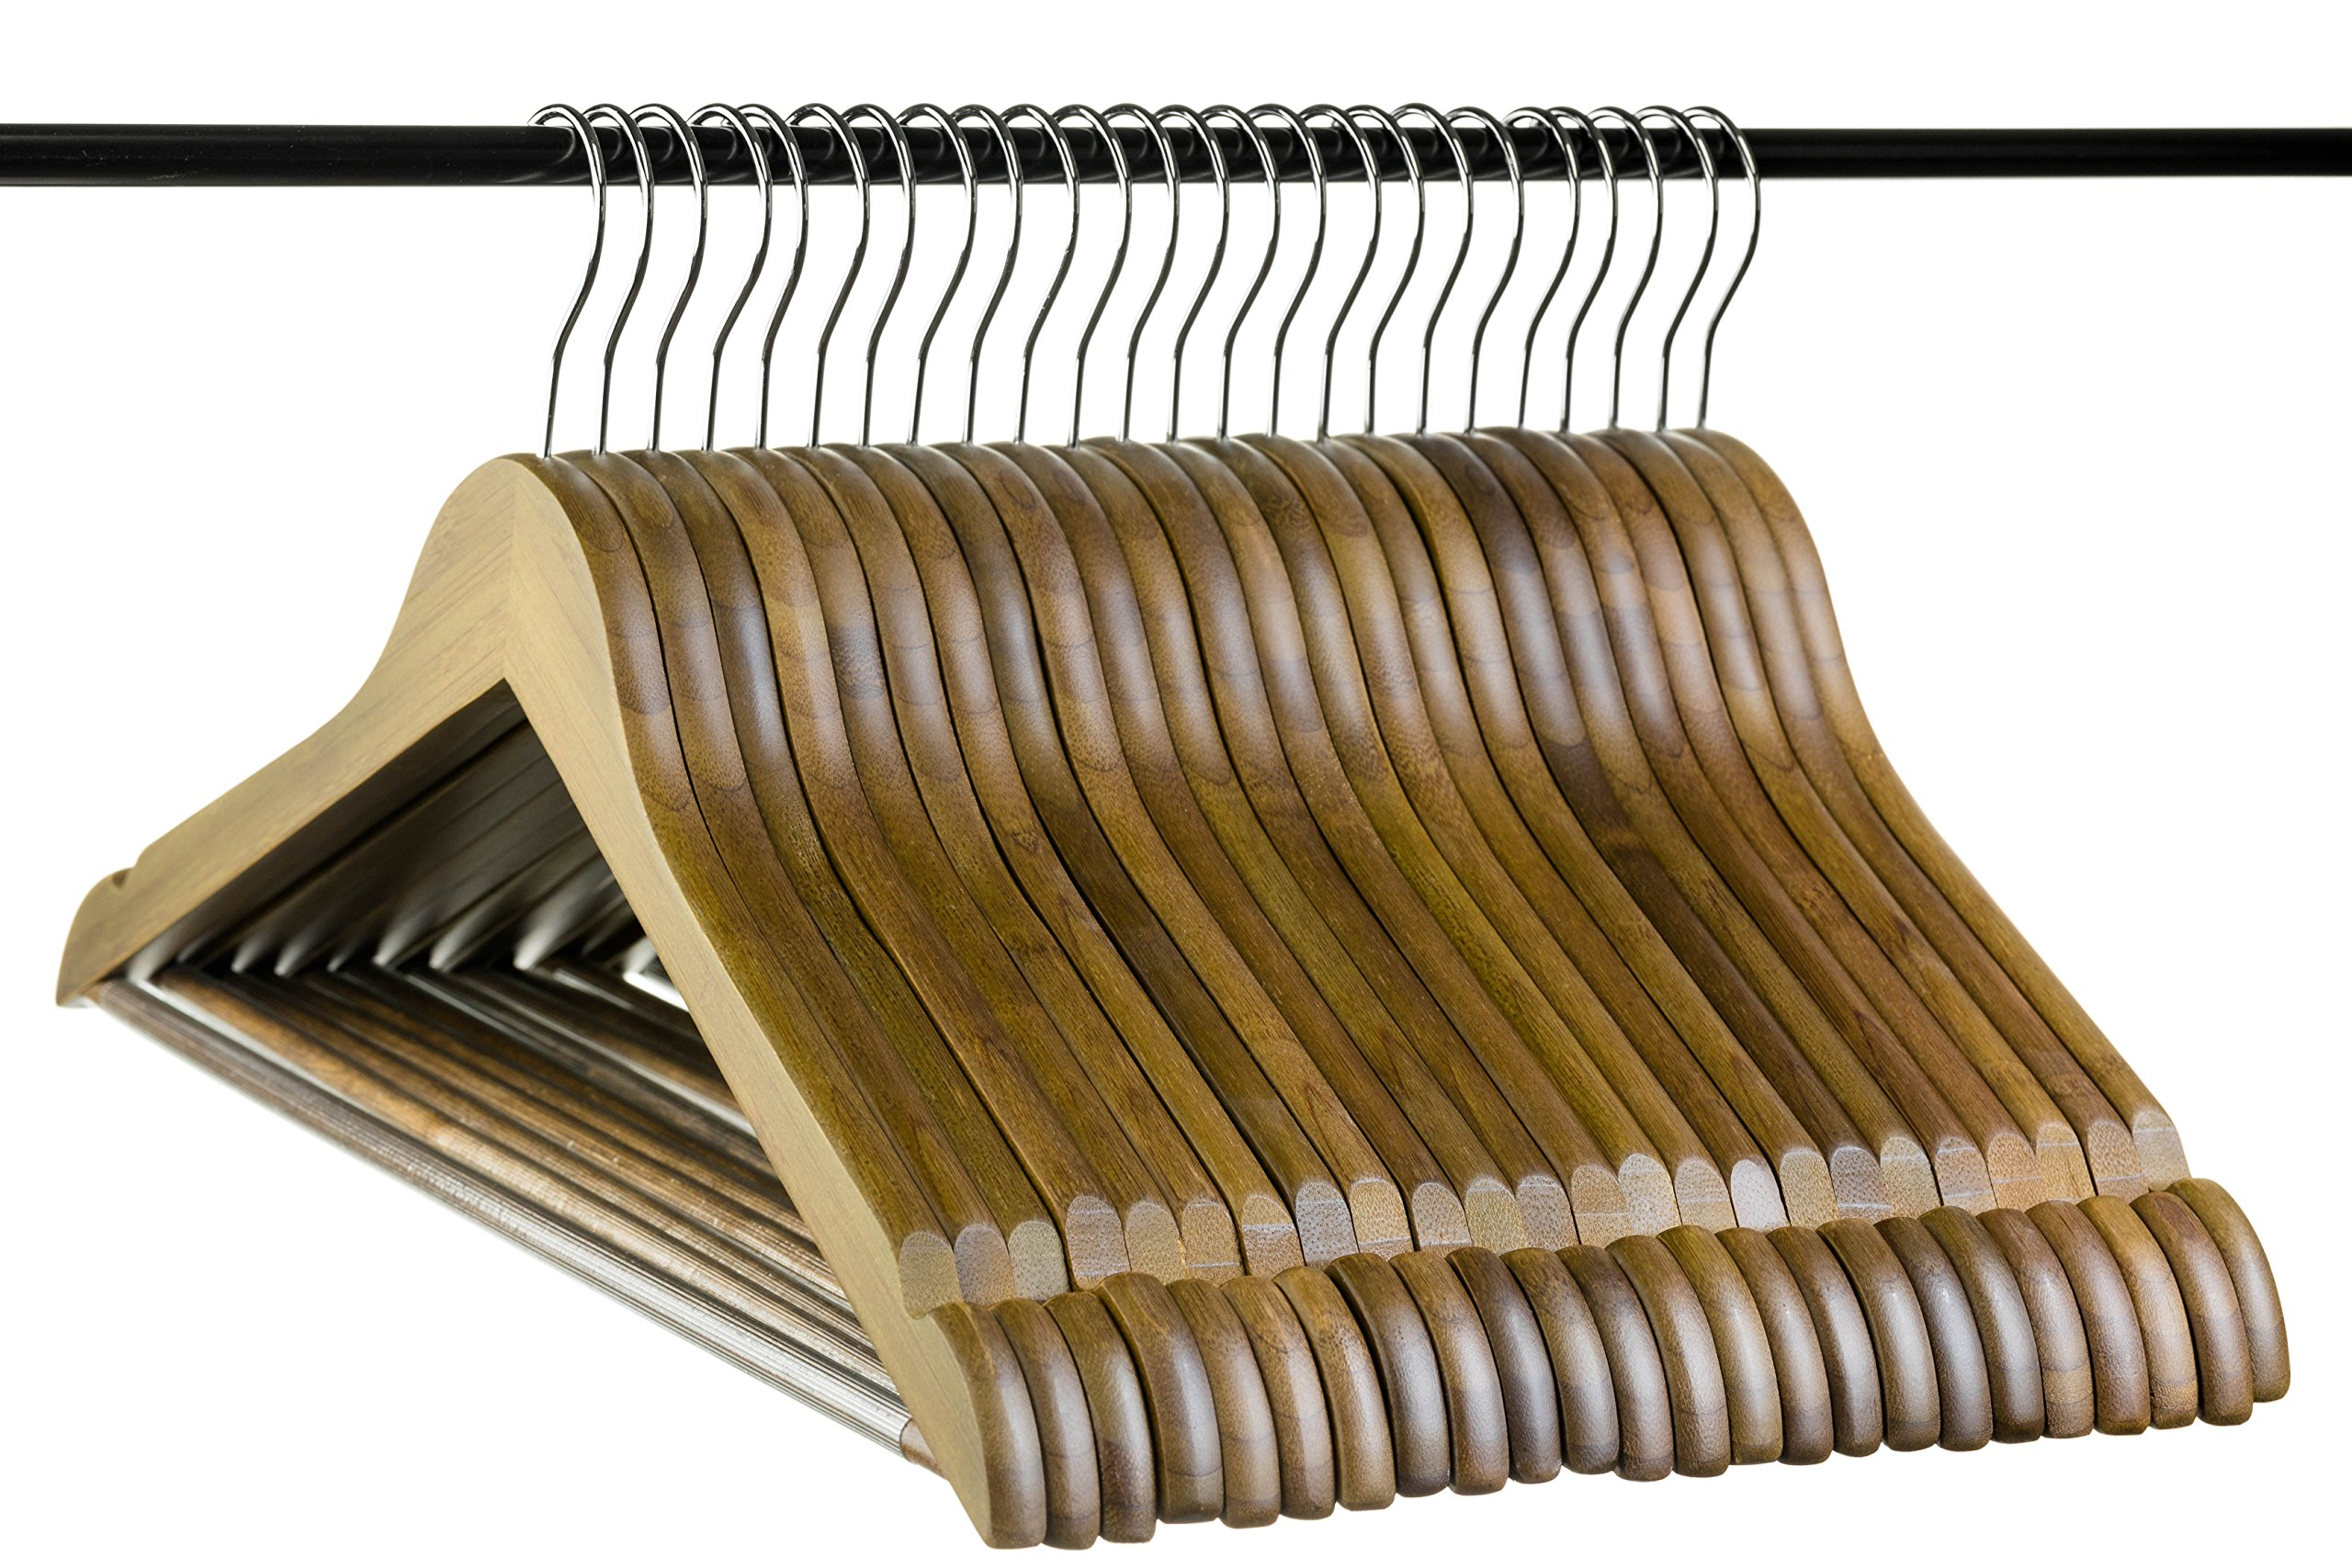 Neaties Bamboo Walnut Wood Hangers with Notches and Non-Slip Bar, 24pk by Neaties (Image #7)